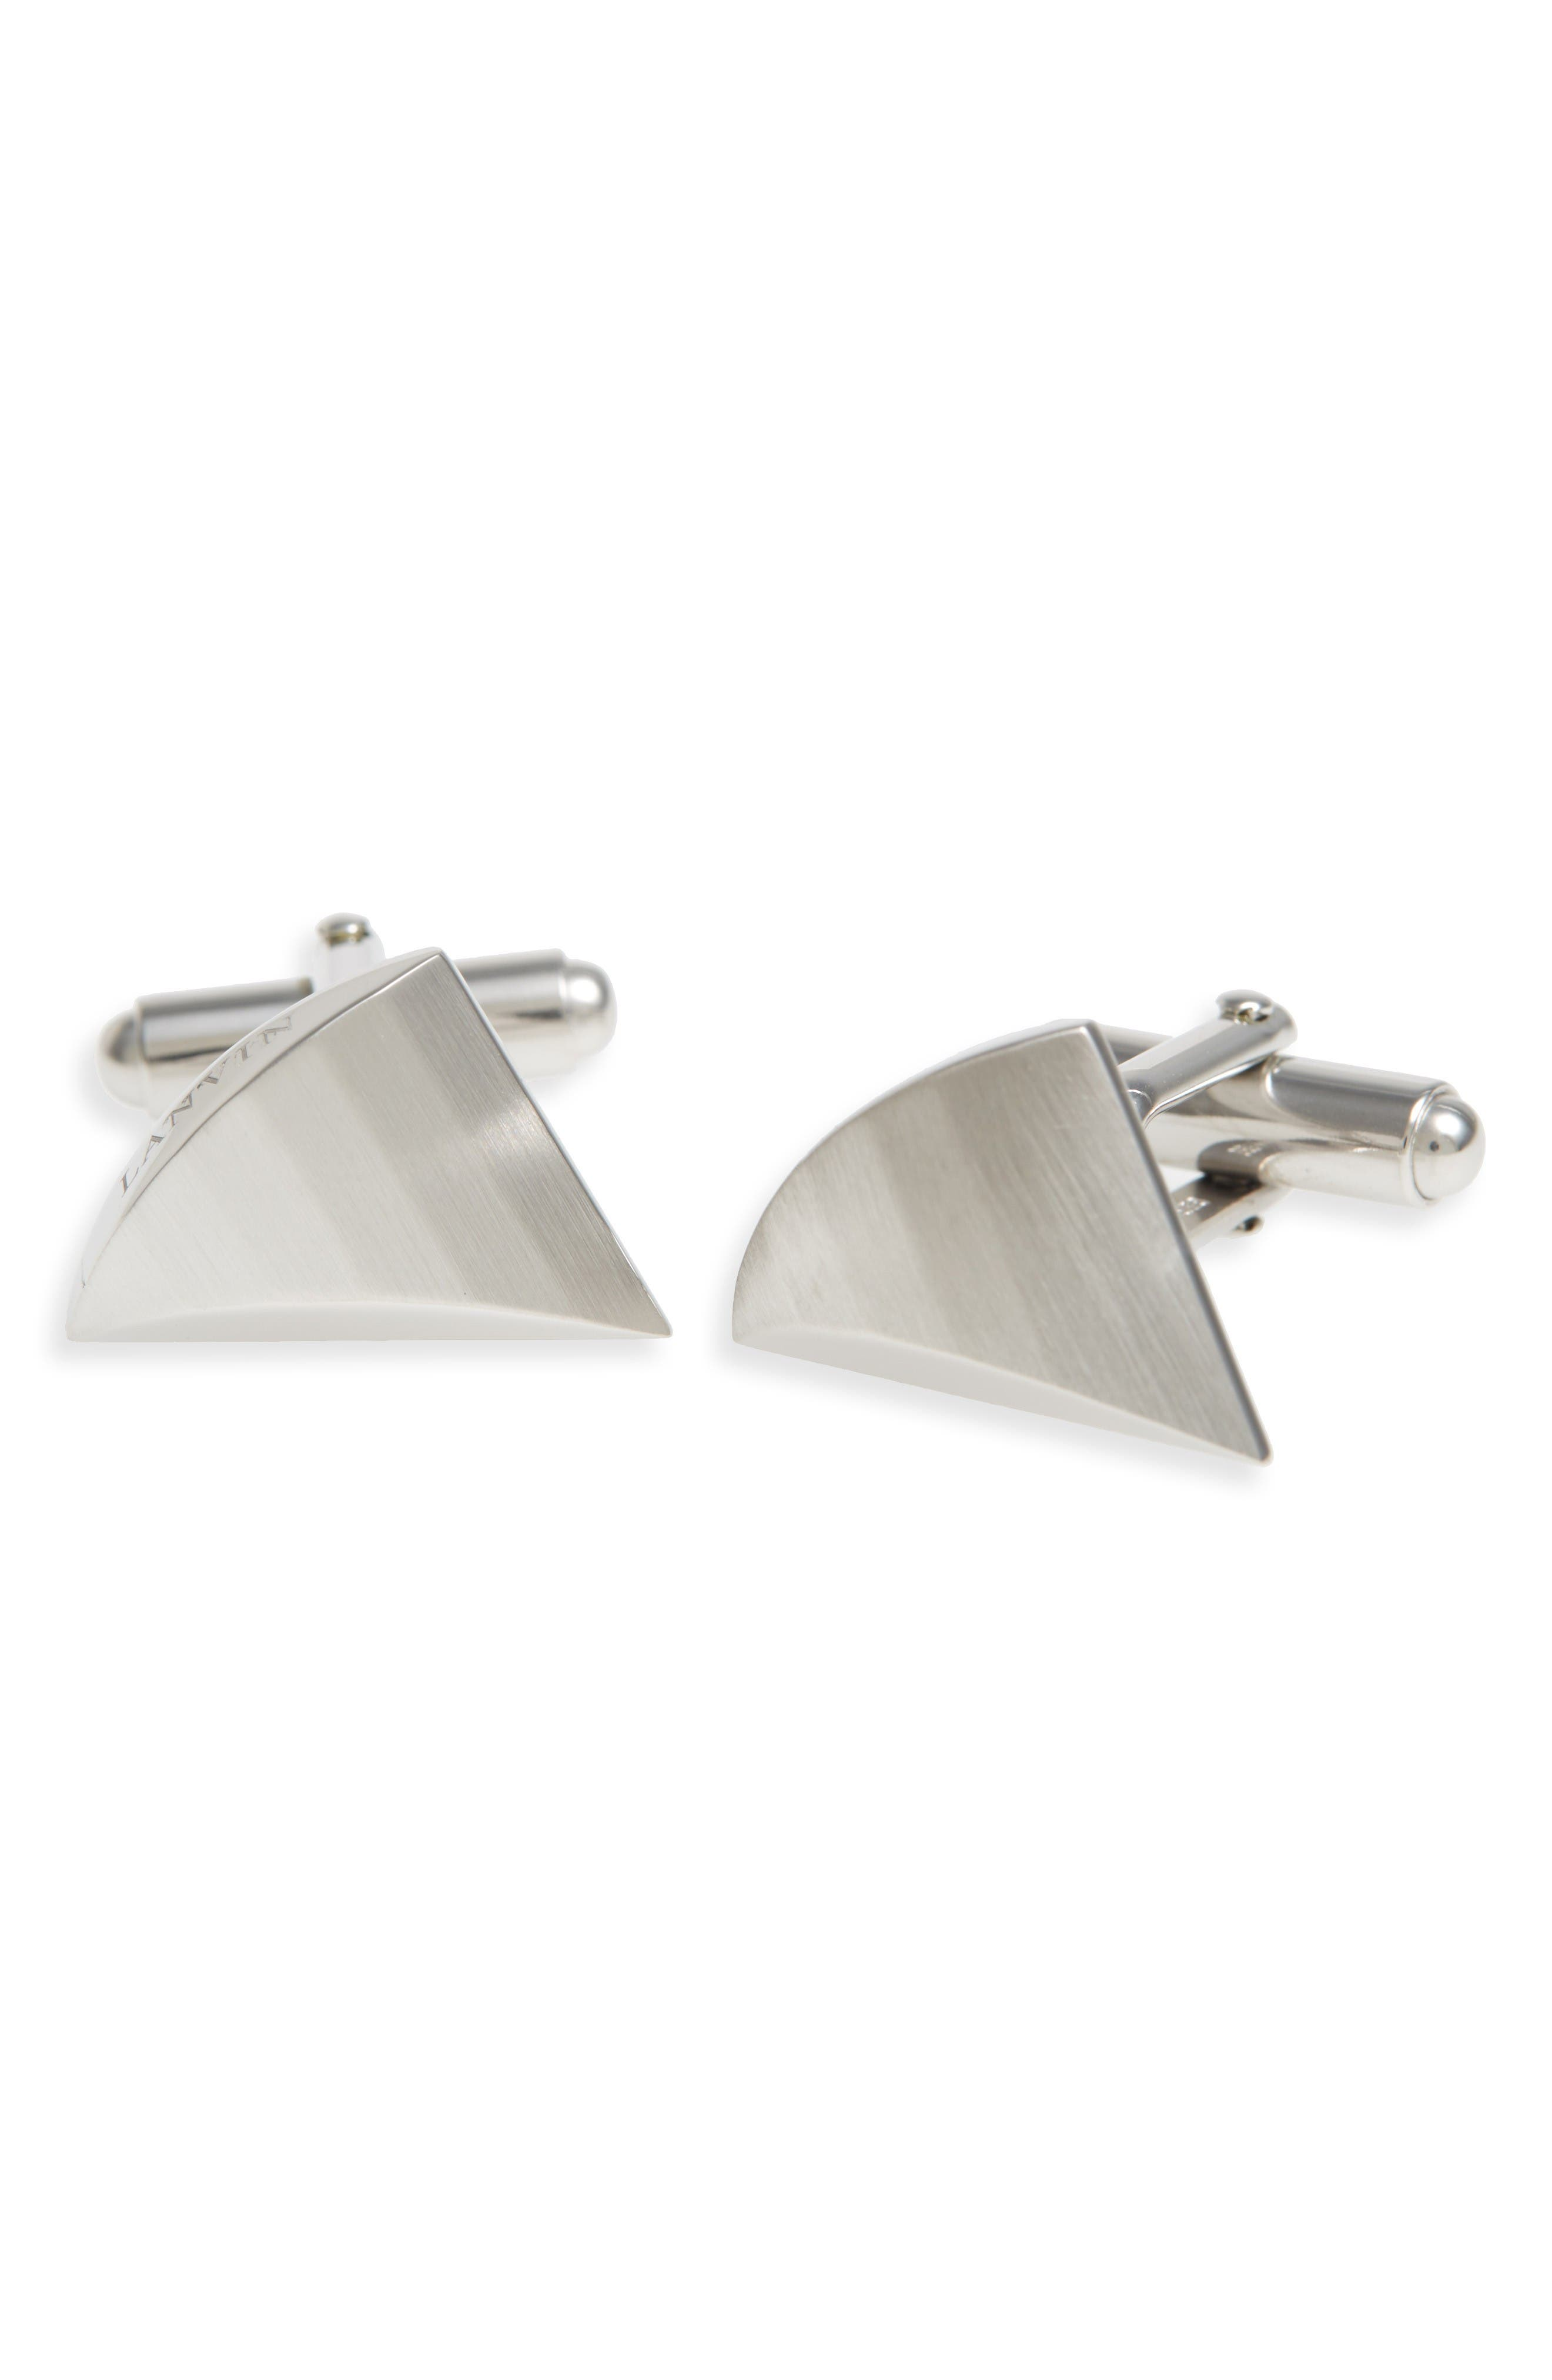 Faux Shark Tooth Cuff Links,                         Main,                         color, Light Silver